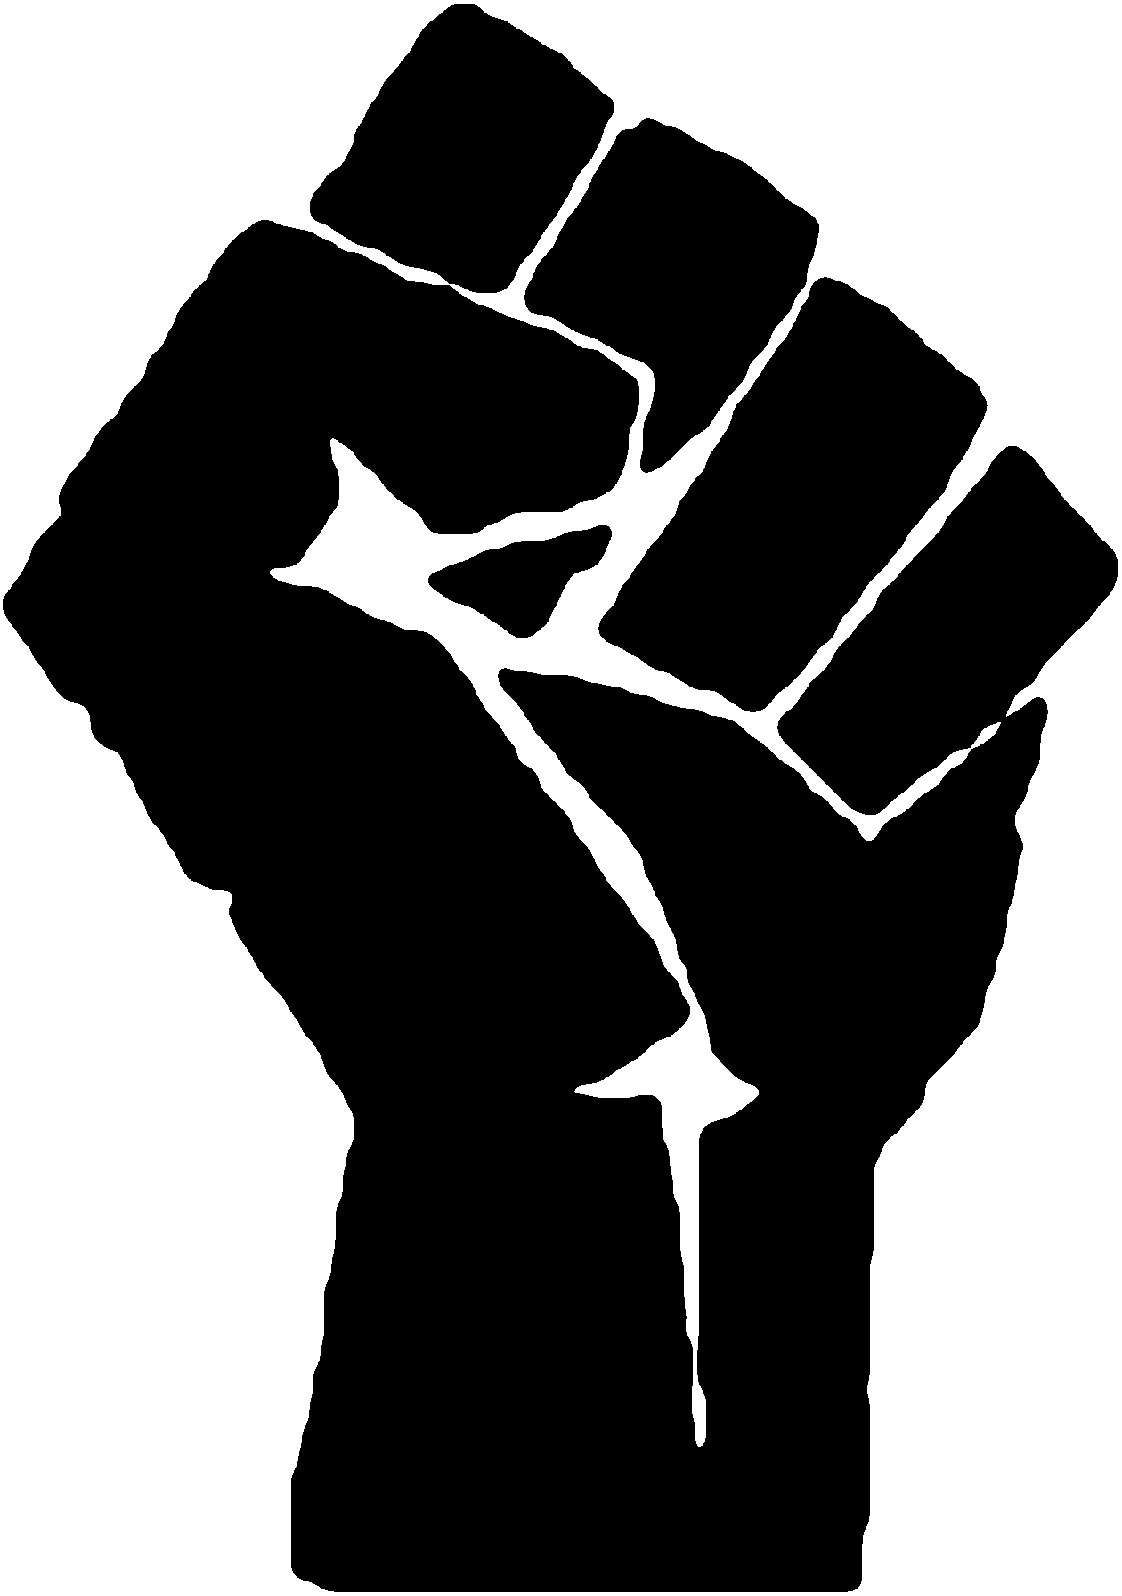 White Guilt and Black Power: The Creation of the Structural Racism Myth